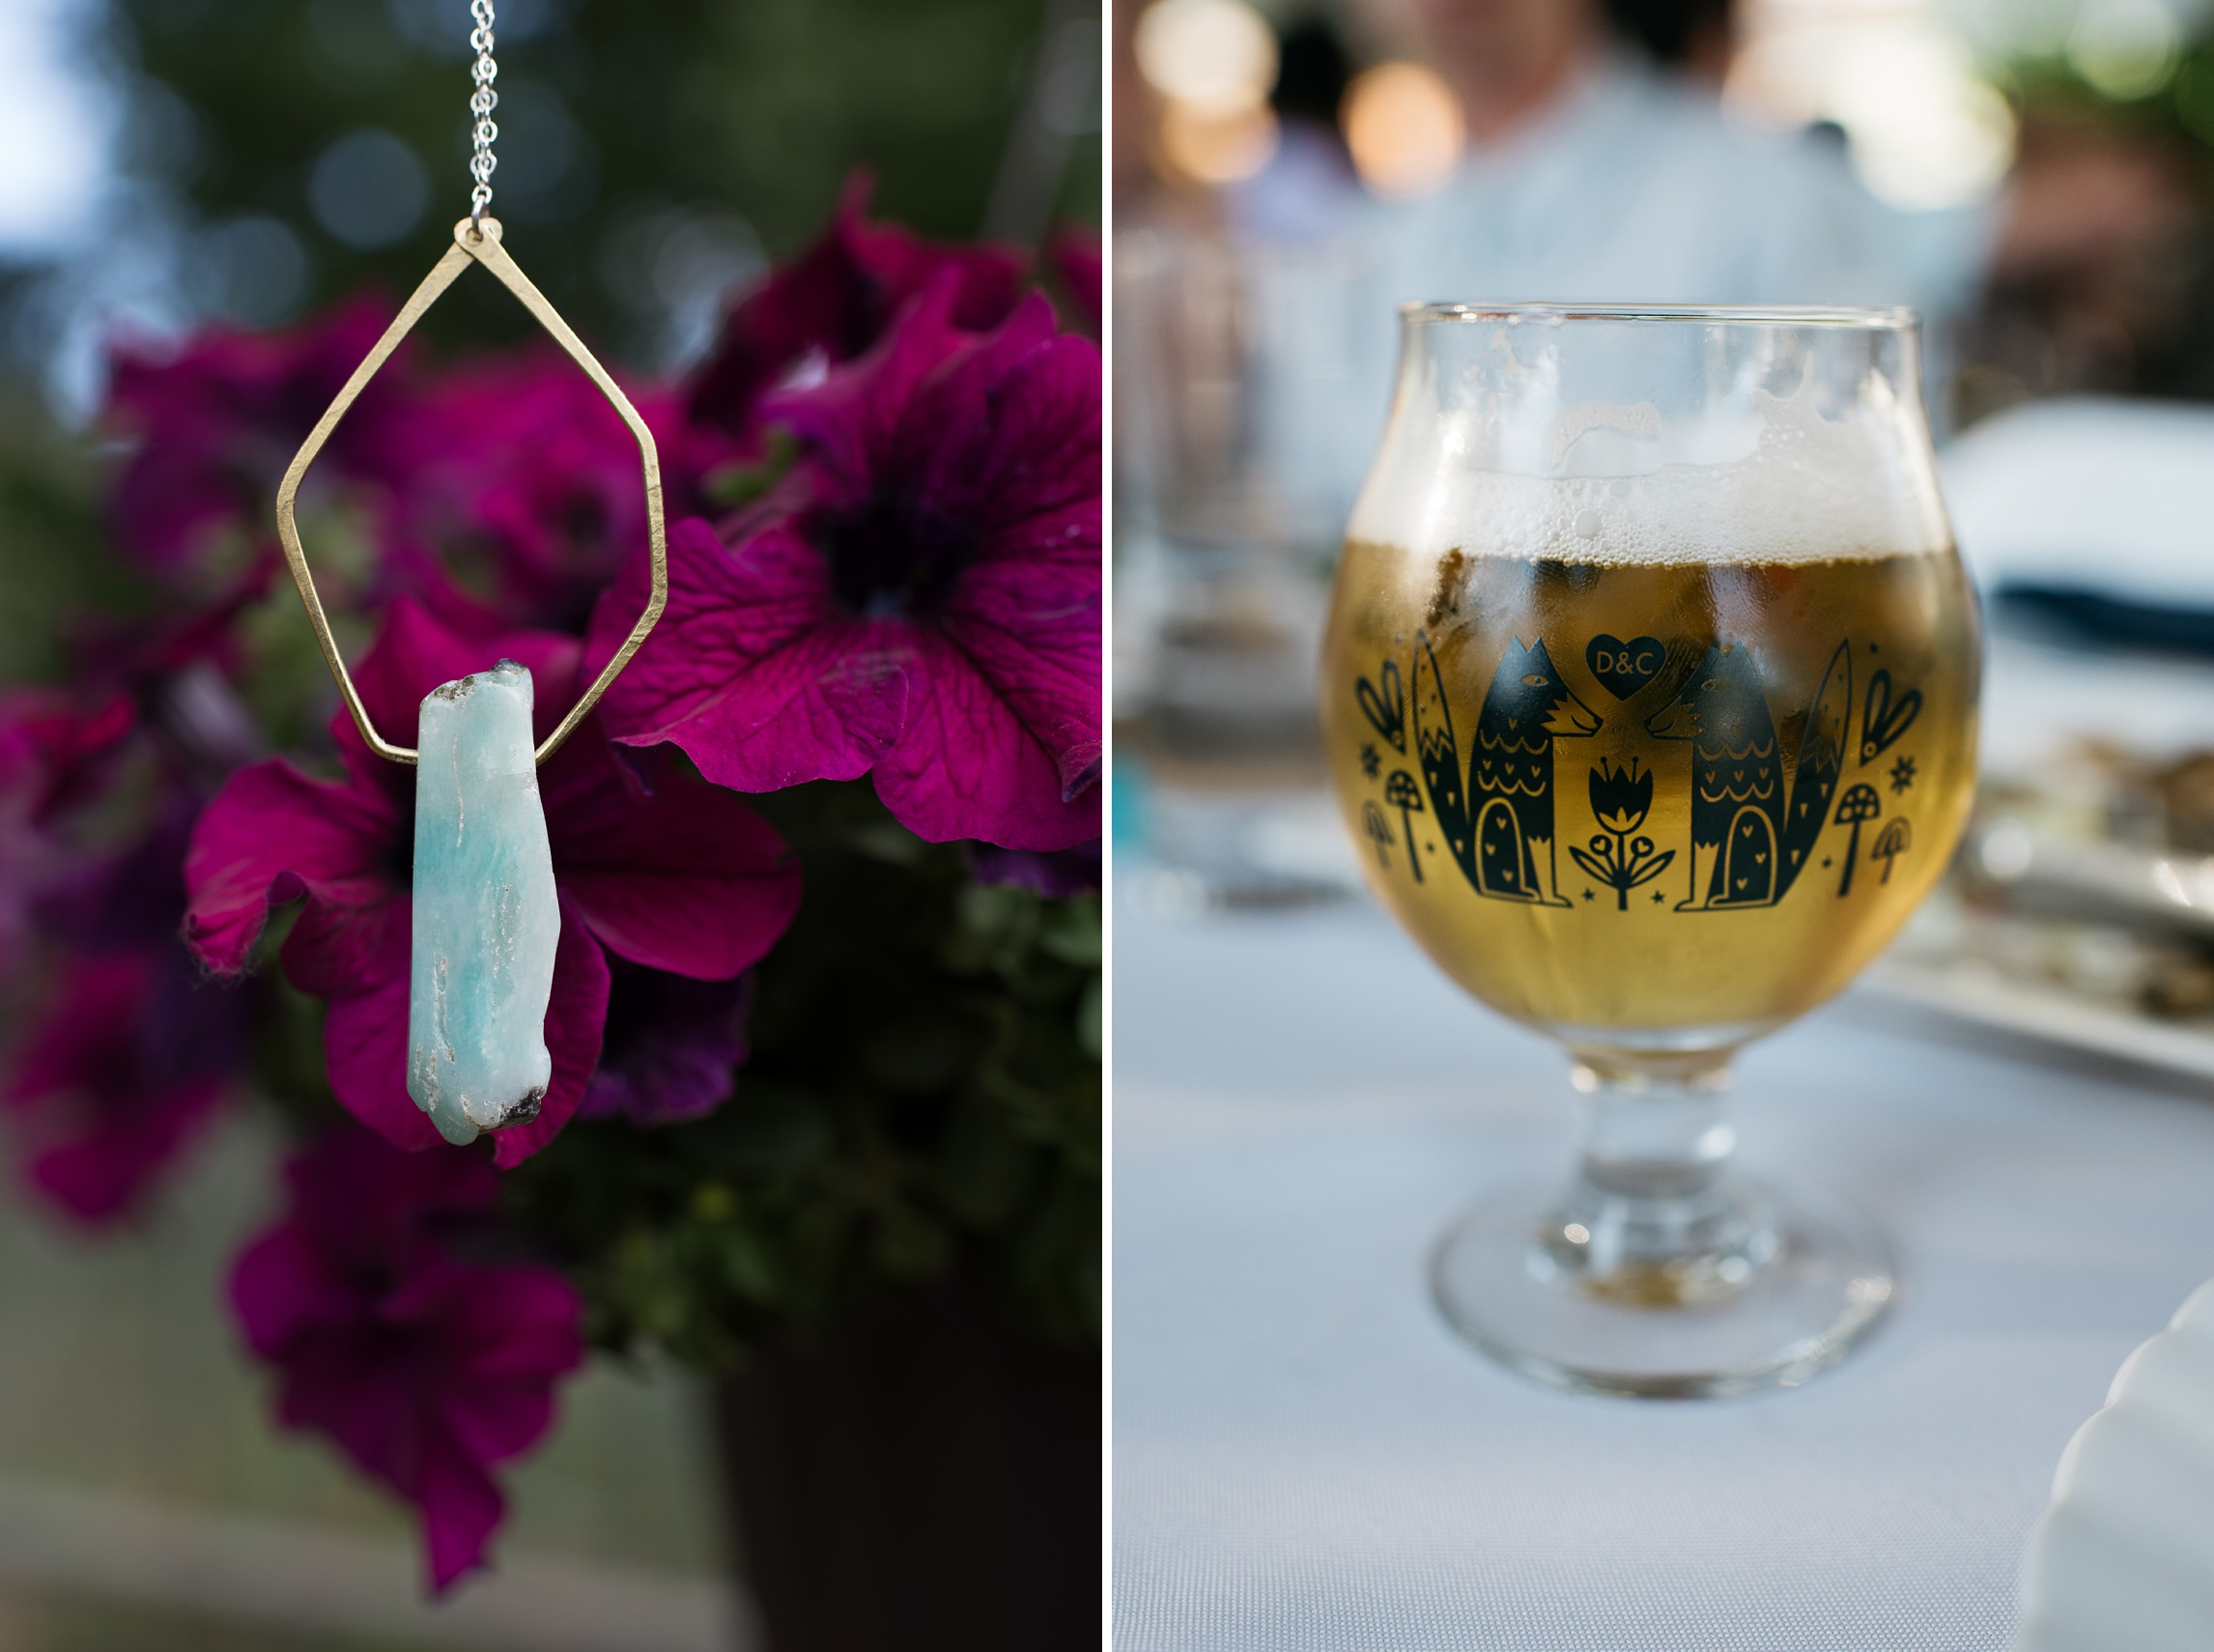 A bright blue handmade pendant and specially made pint glasses with art by Allie Ogg of Fort Collins, Colorado. Wedding photography by Sonja Salzburg of Sonja K Photography.